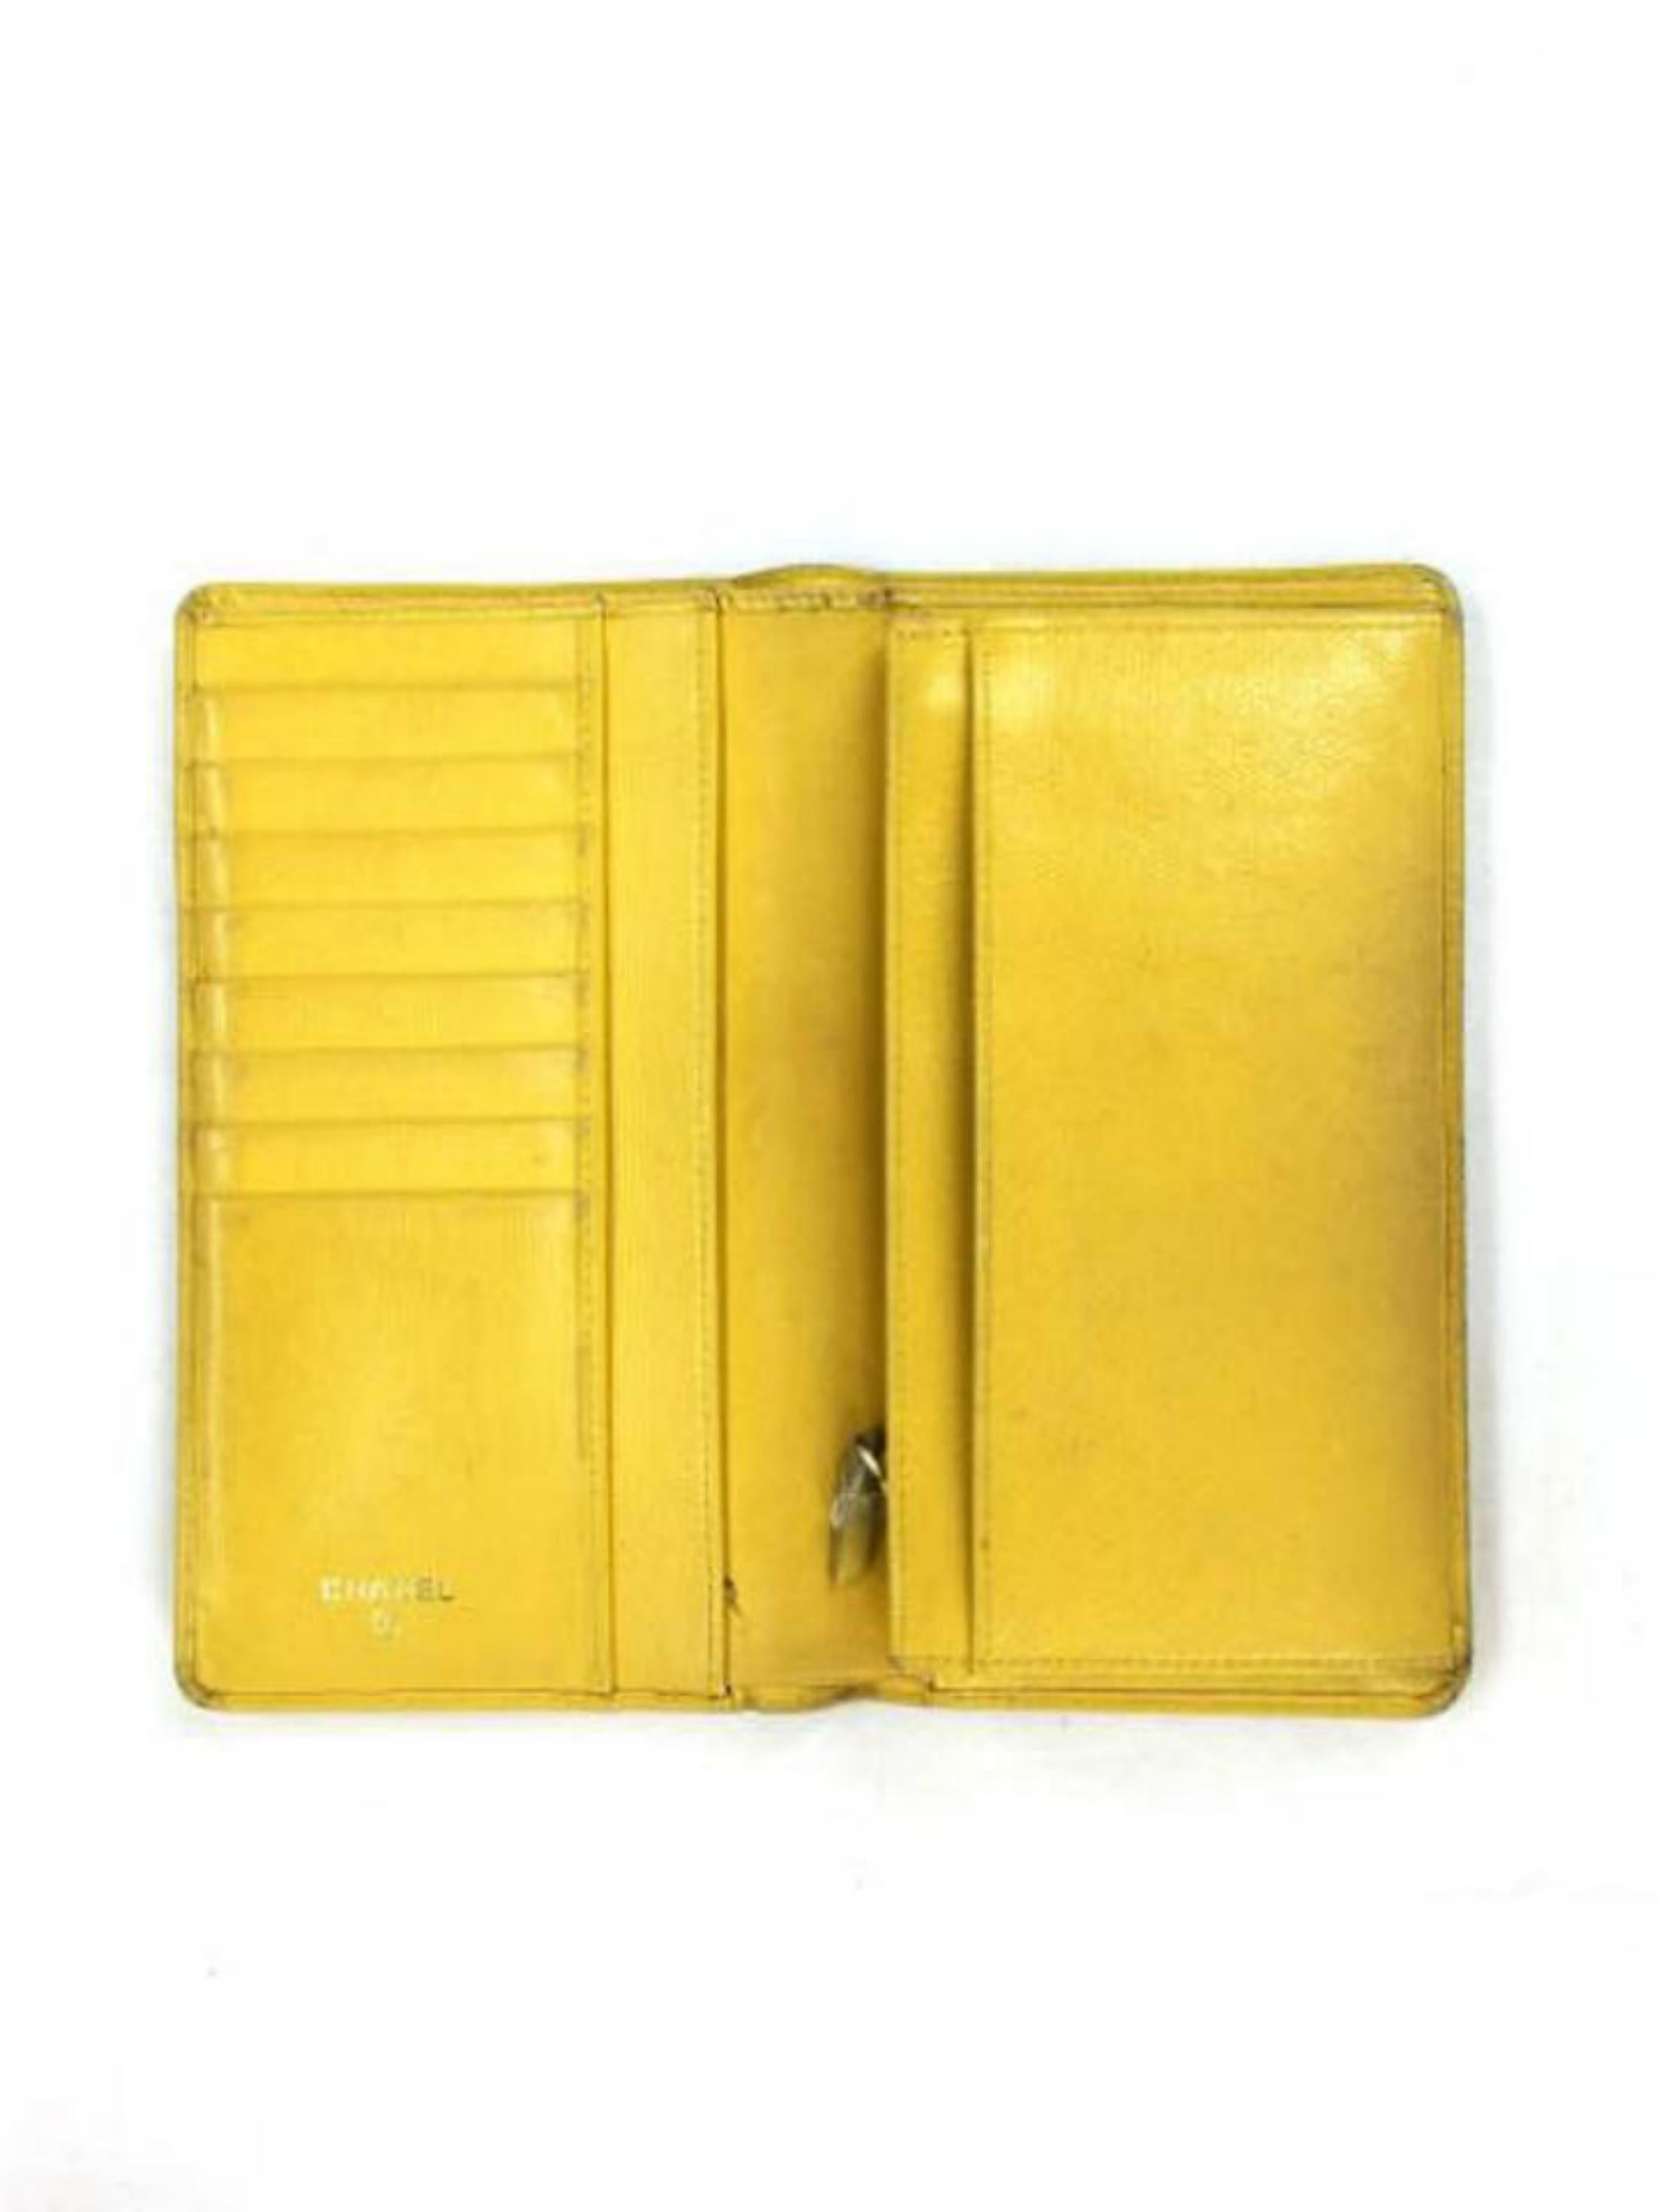 9dcfaa65d5c6 Chanel Yellow Bifold Long 226701 Wallet For Sale at 1stdibs